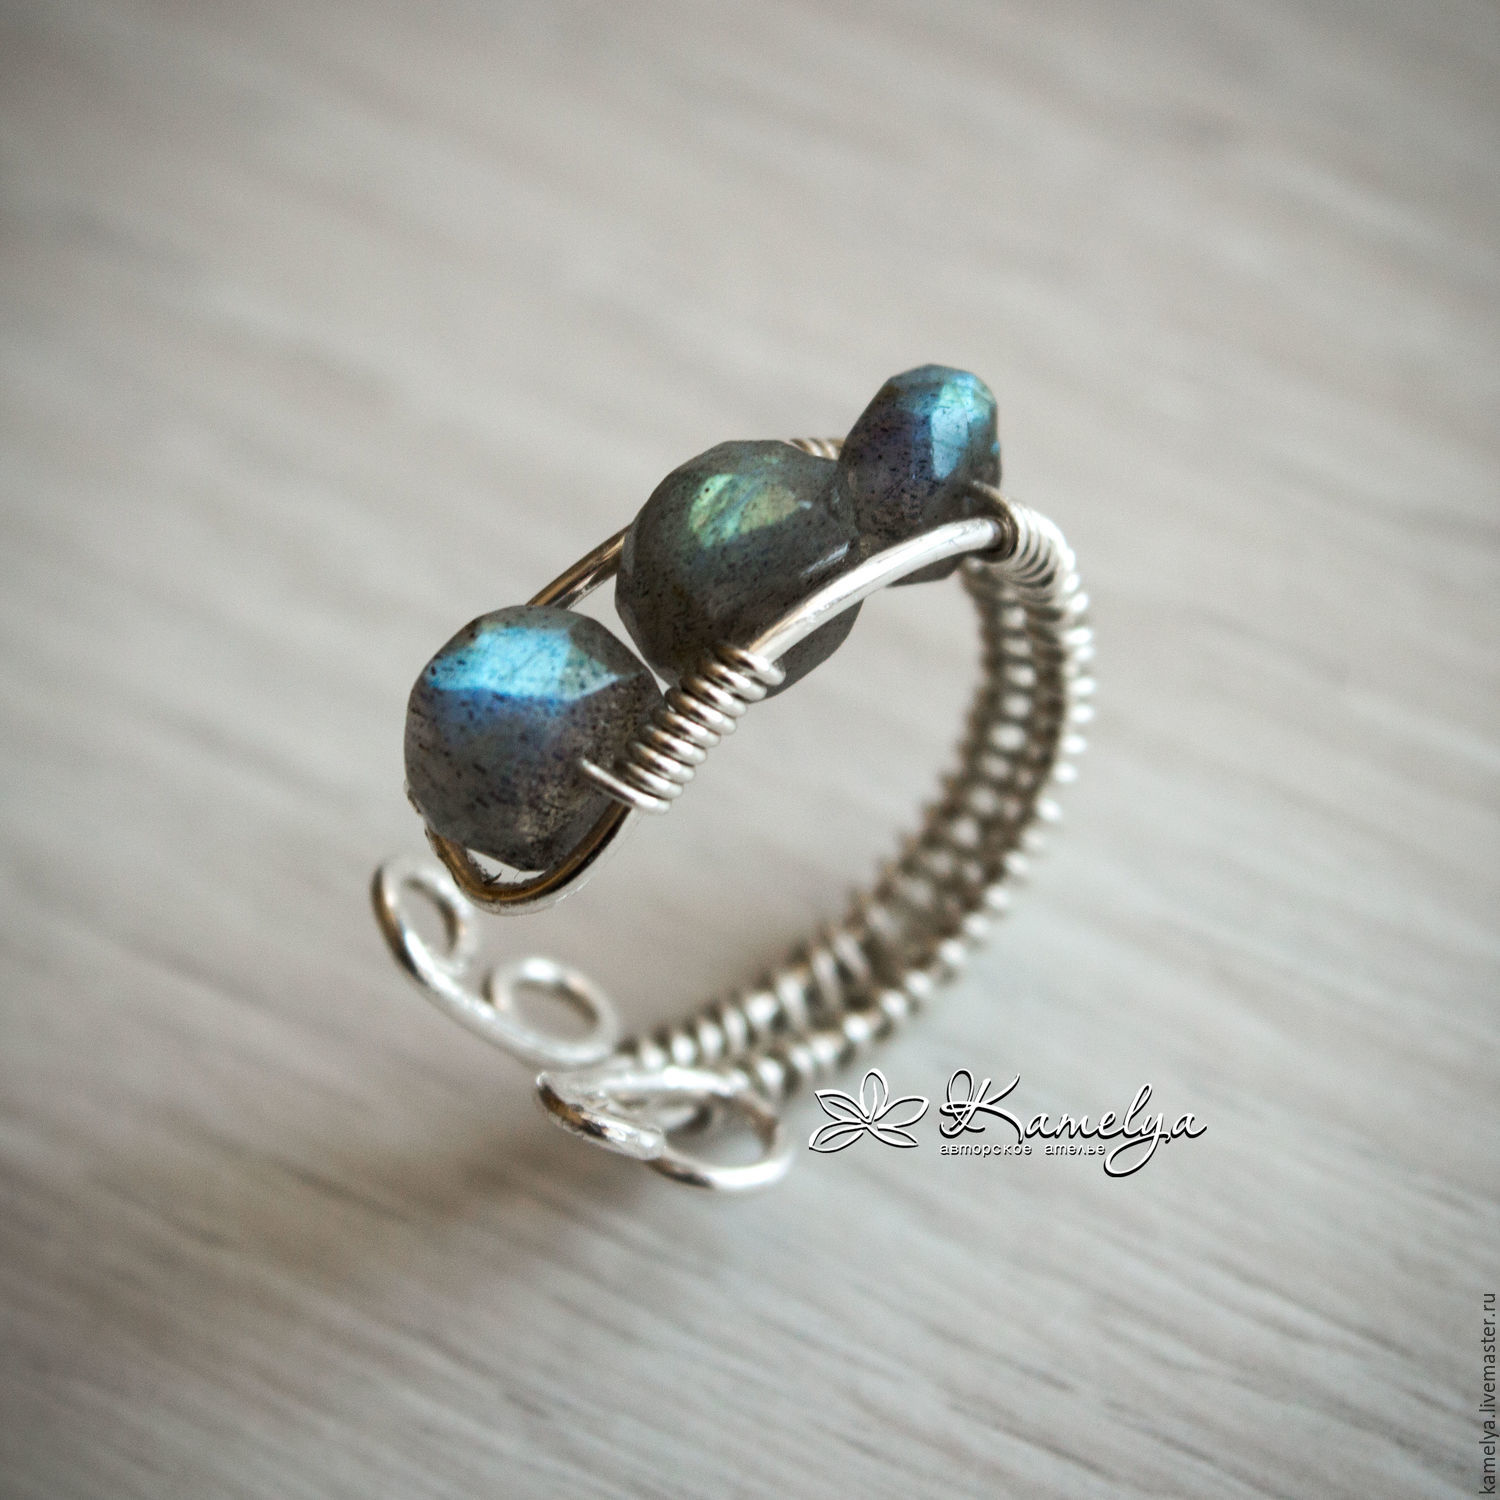 Silver Ring With Labradorite Moonrise 925 Pr Wire Wrap Shop Sterling Wrapped Necklace Blue Tiger Eye